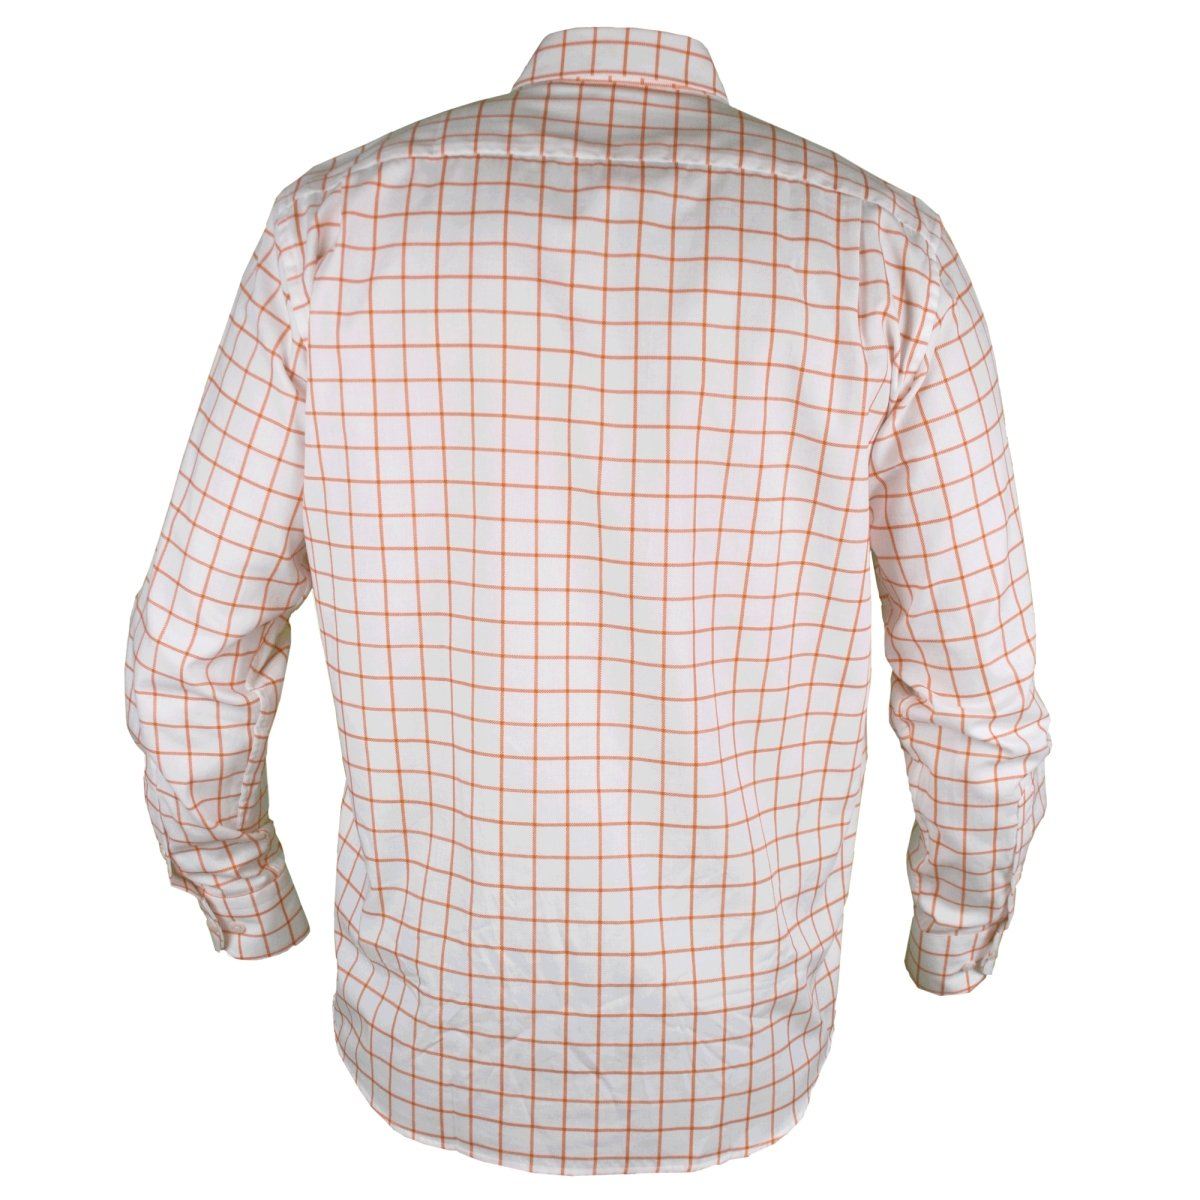 Checkered Long Sleeve With Mr K on Pocket - Mr. Knickerbocker